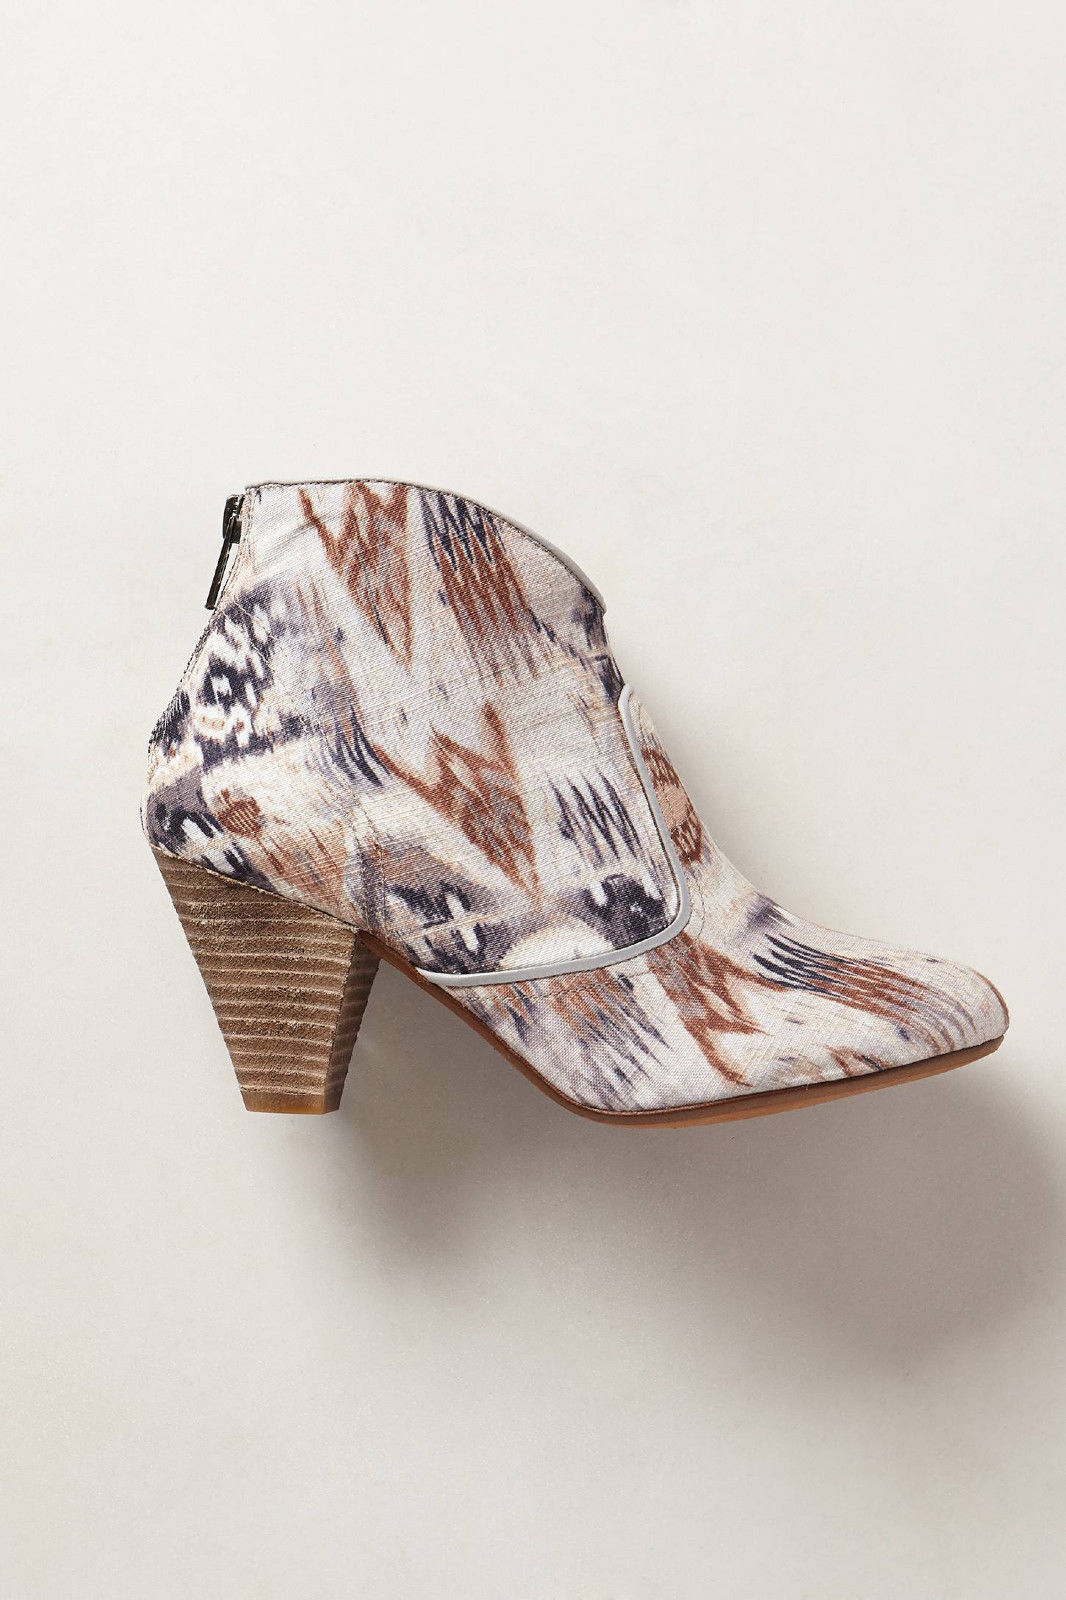 Anthropologie Booties Ankle Boots By Highway Rambler Ikat Heels By Boots 67 Collection 39 c89546